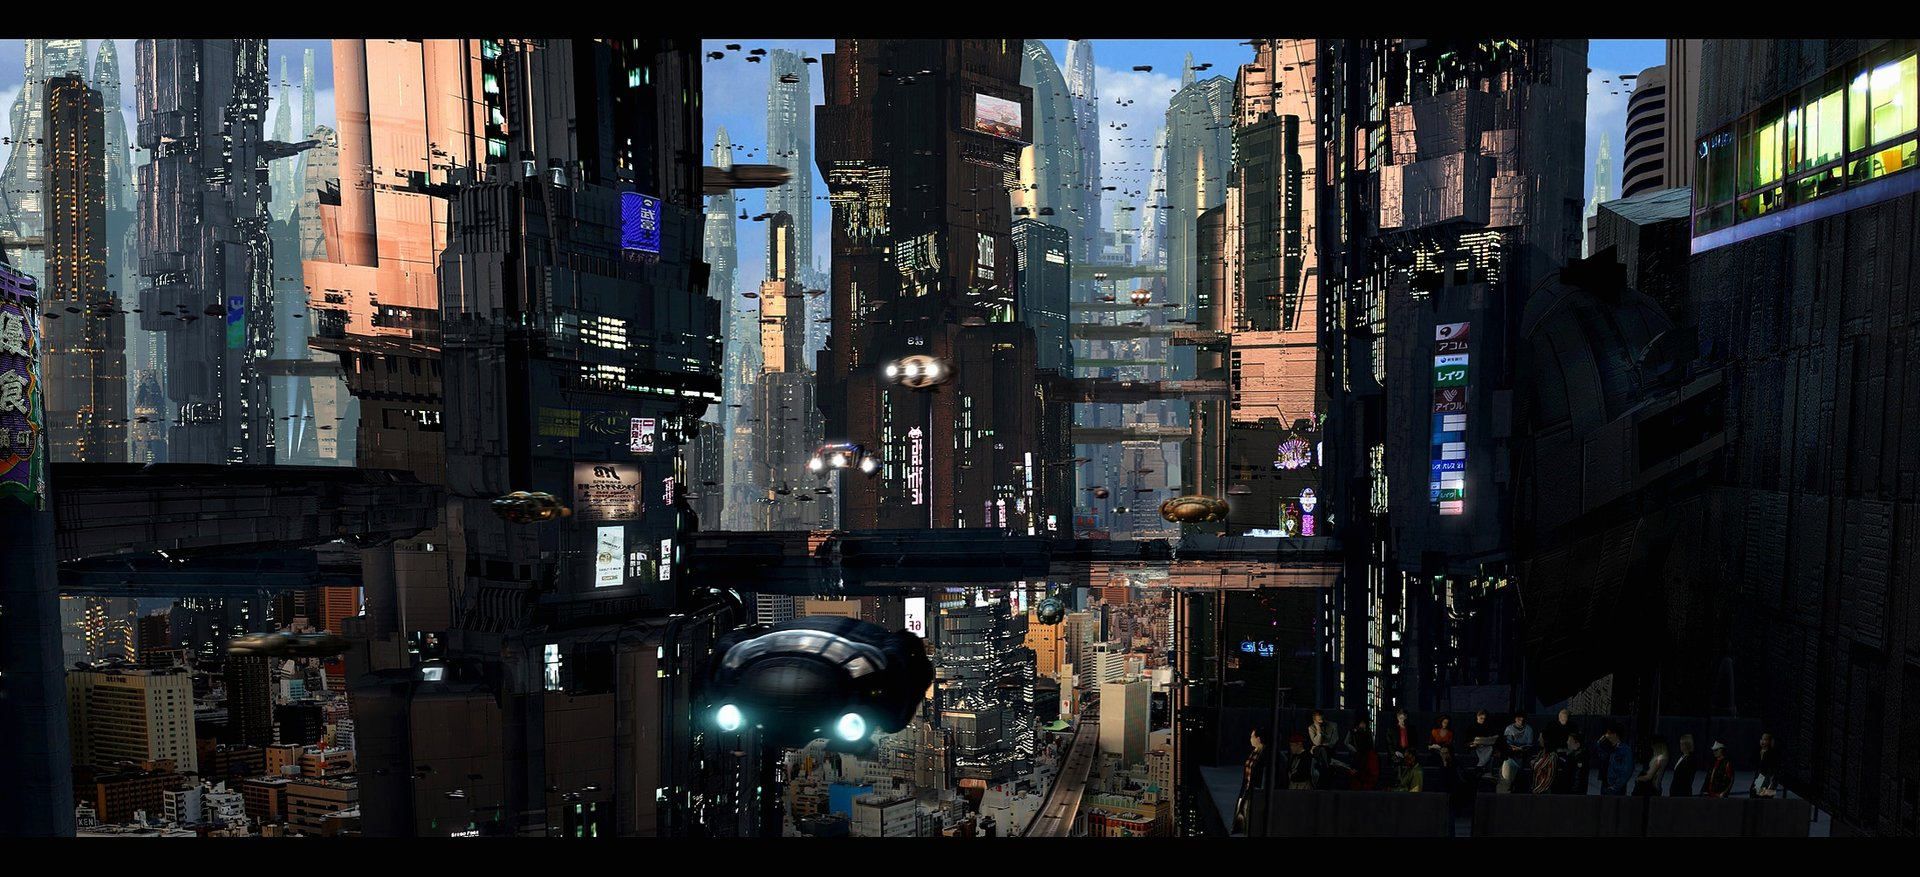 Scott richard futuristic city 5 crop by rich35211 d5ou38h